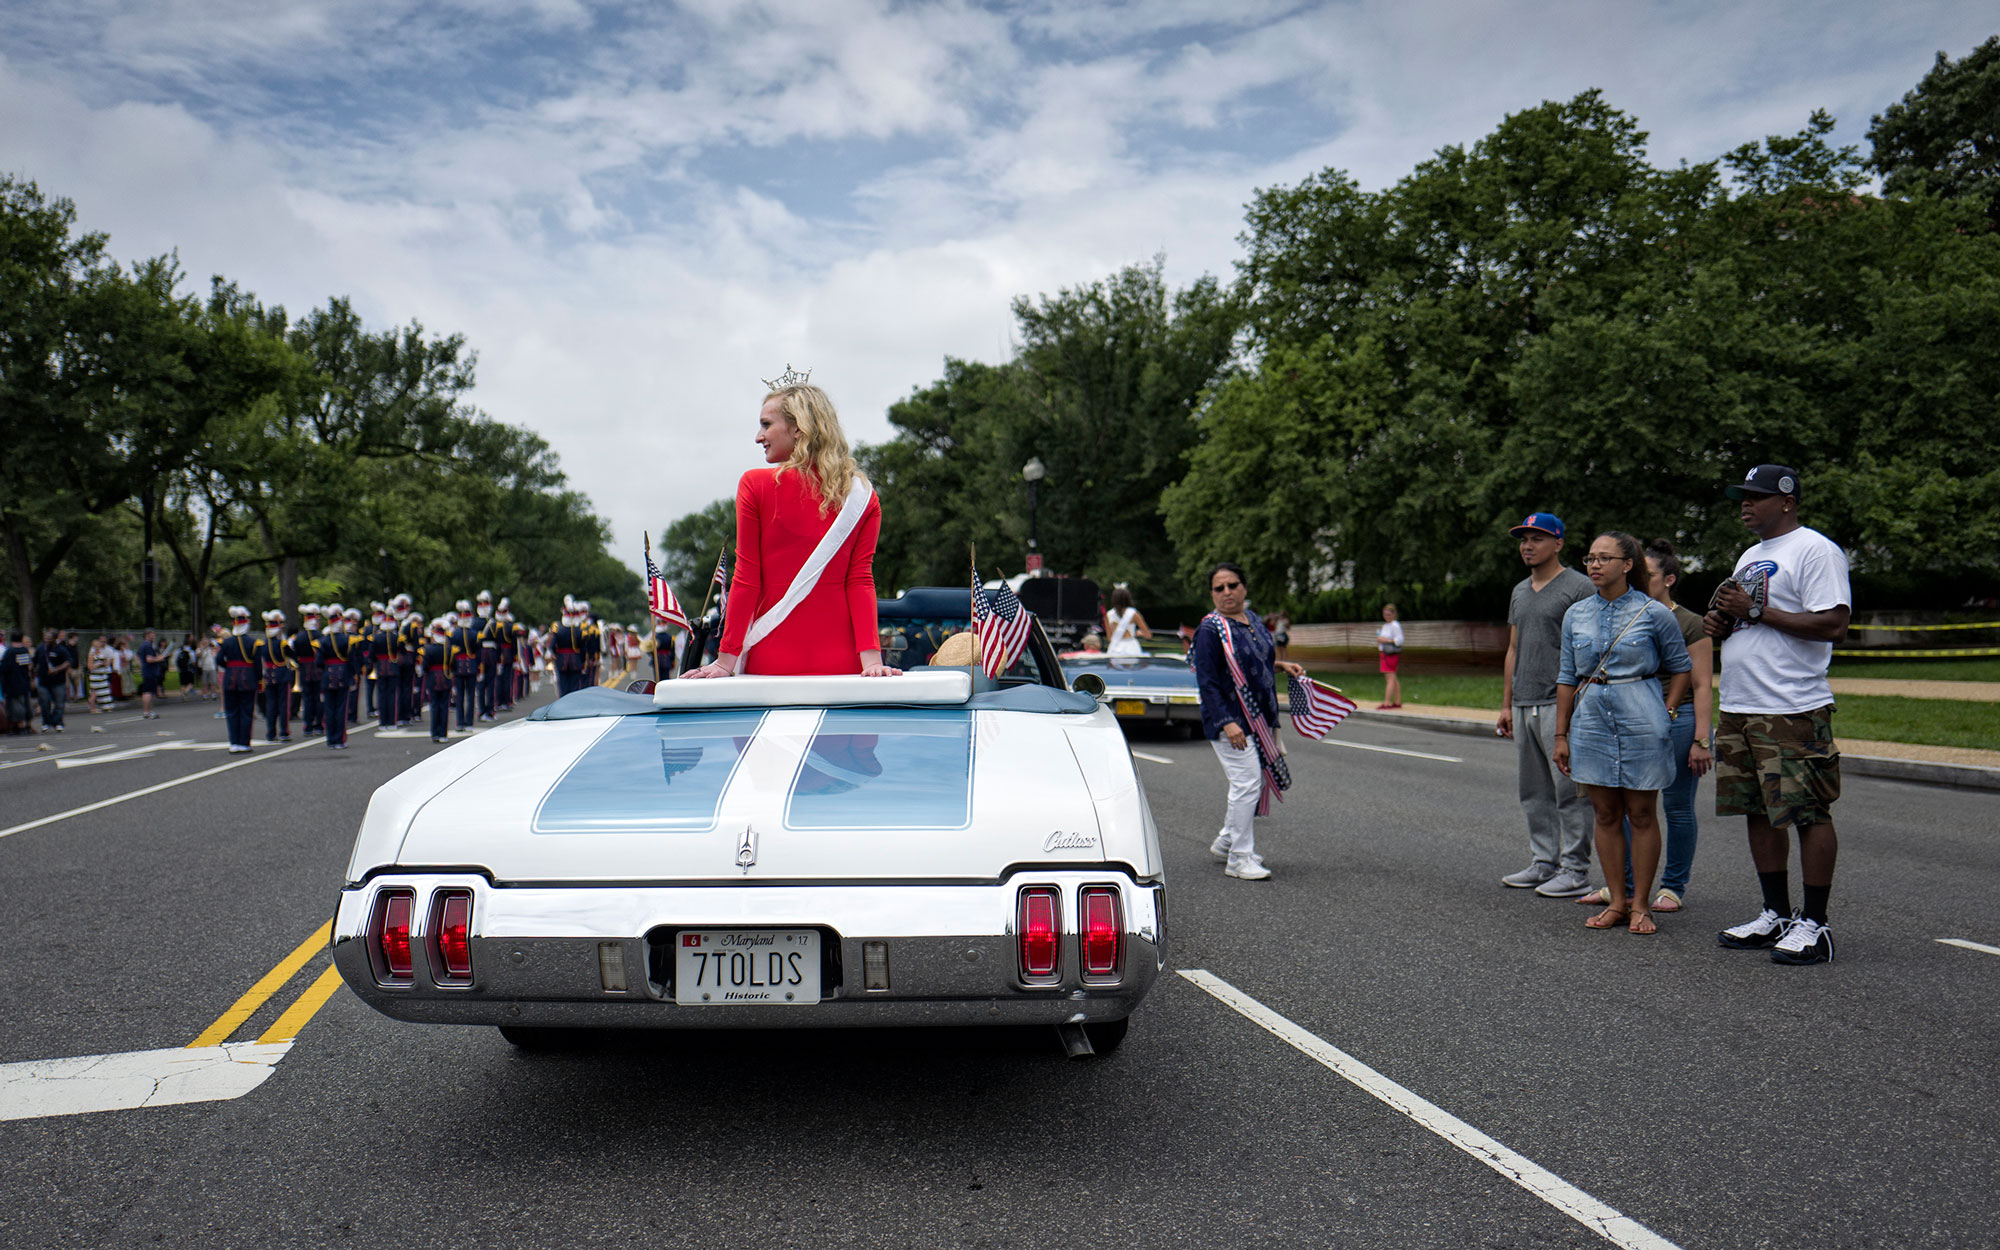 America's Best 4th of July Parades